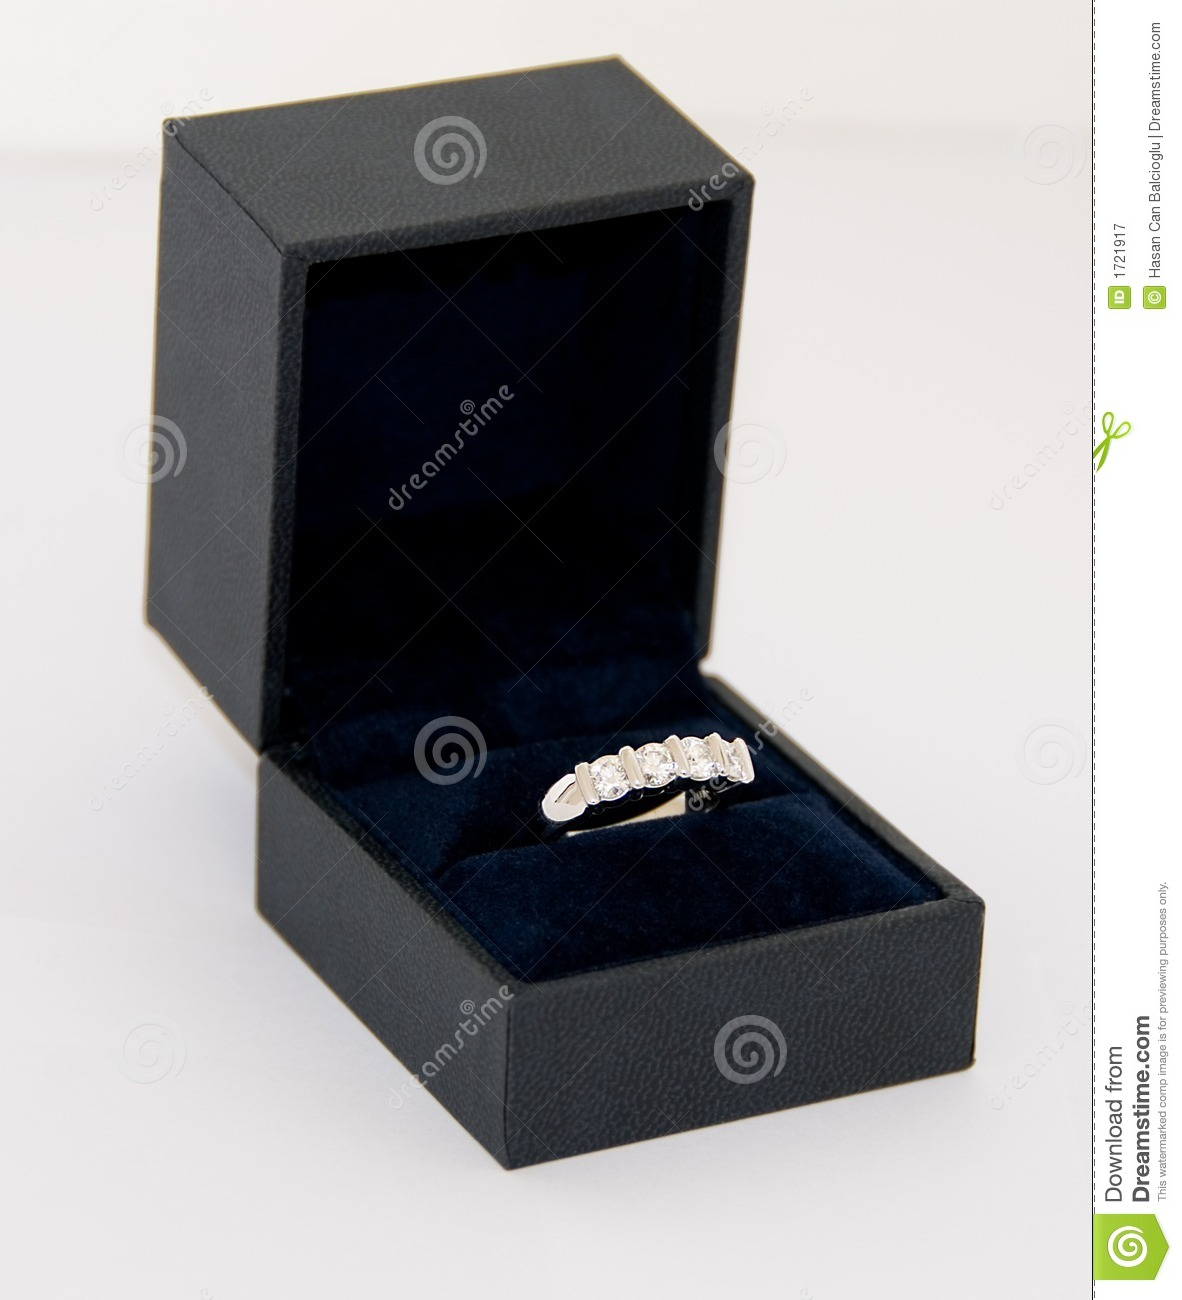 Engagement ring in box pictures